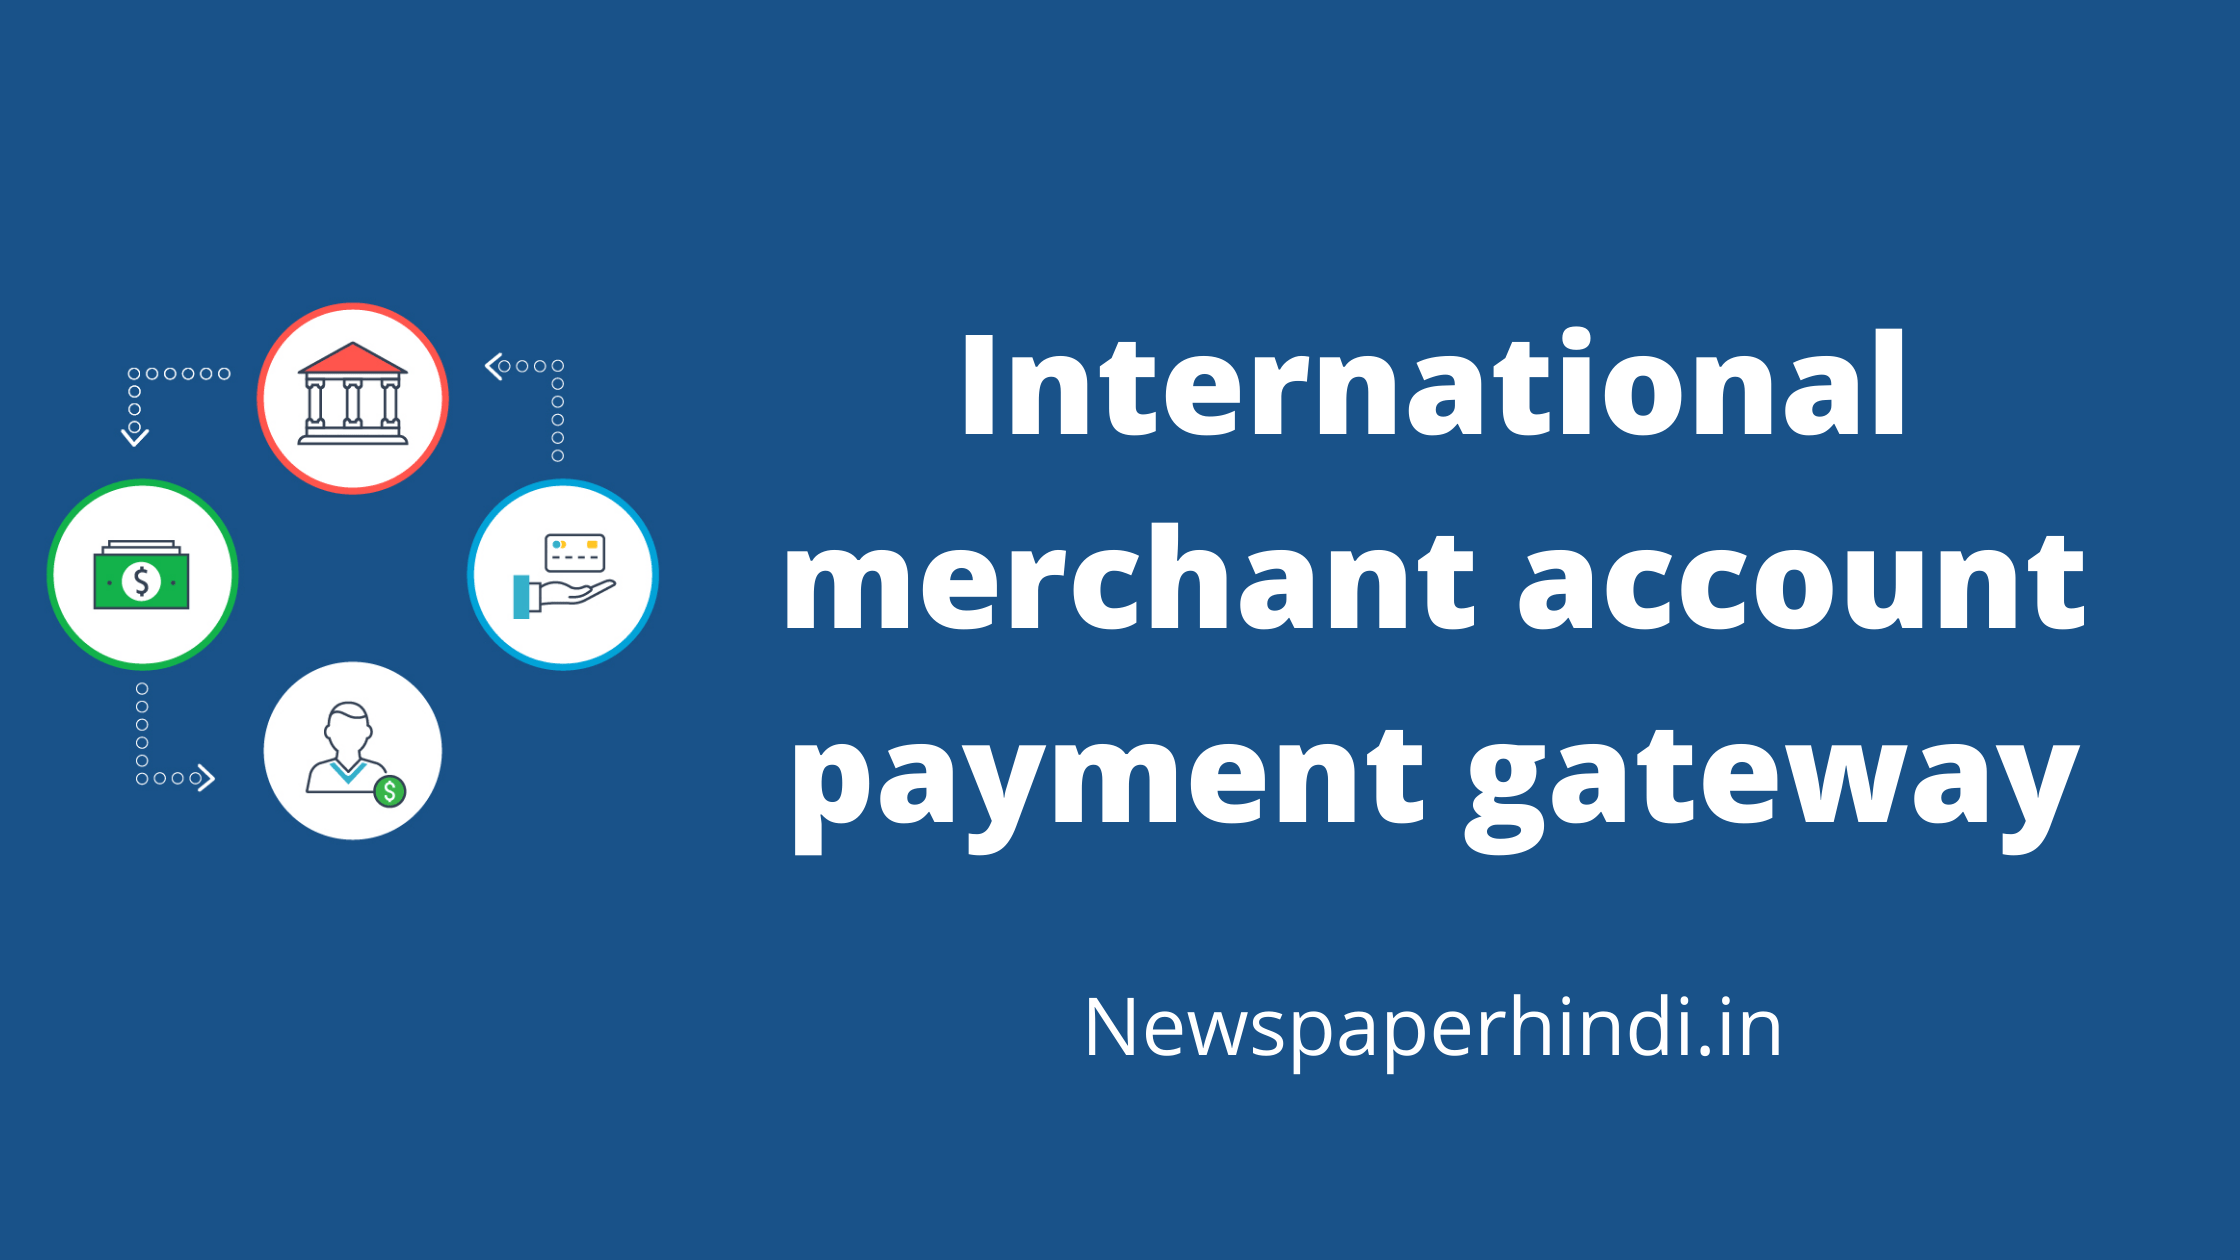 International merchant account payment gateway